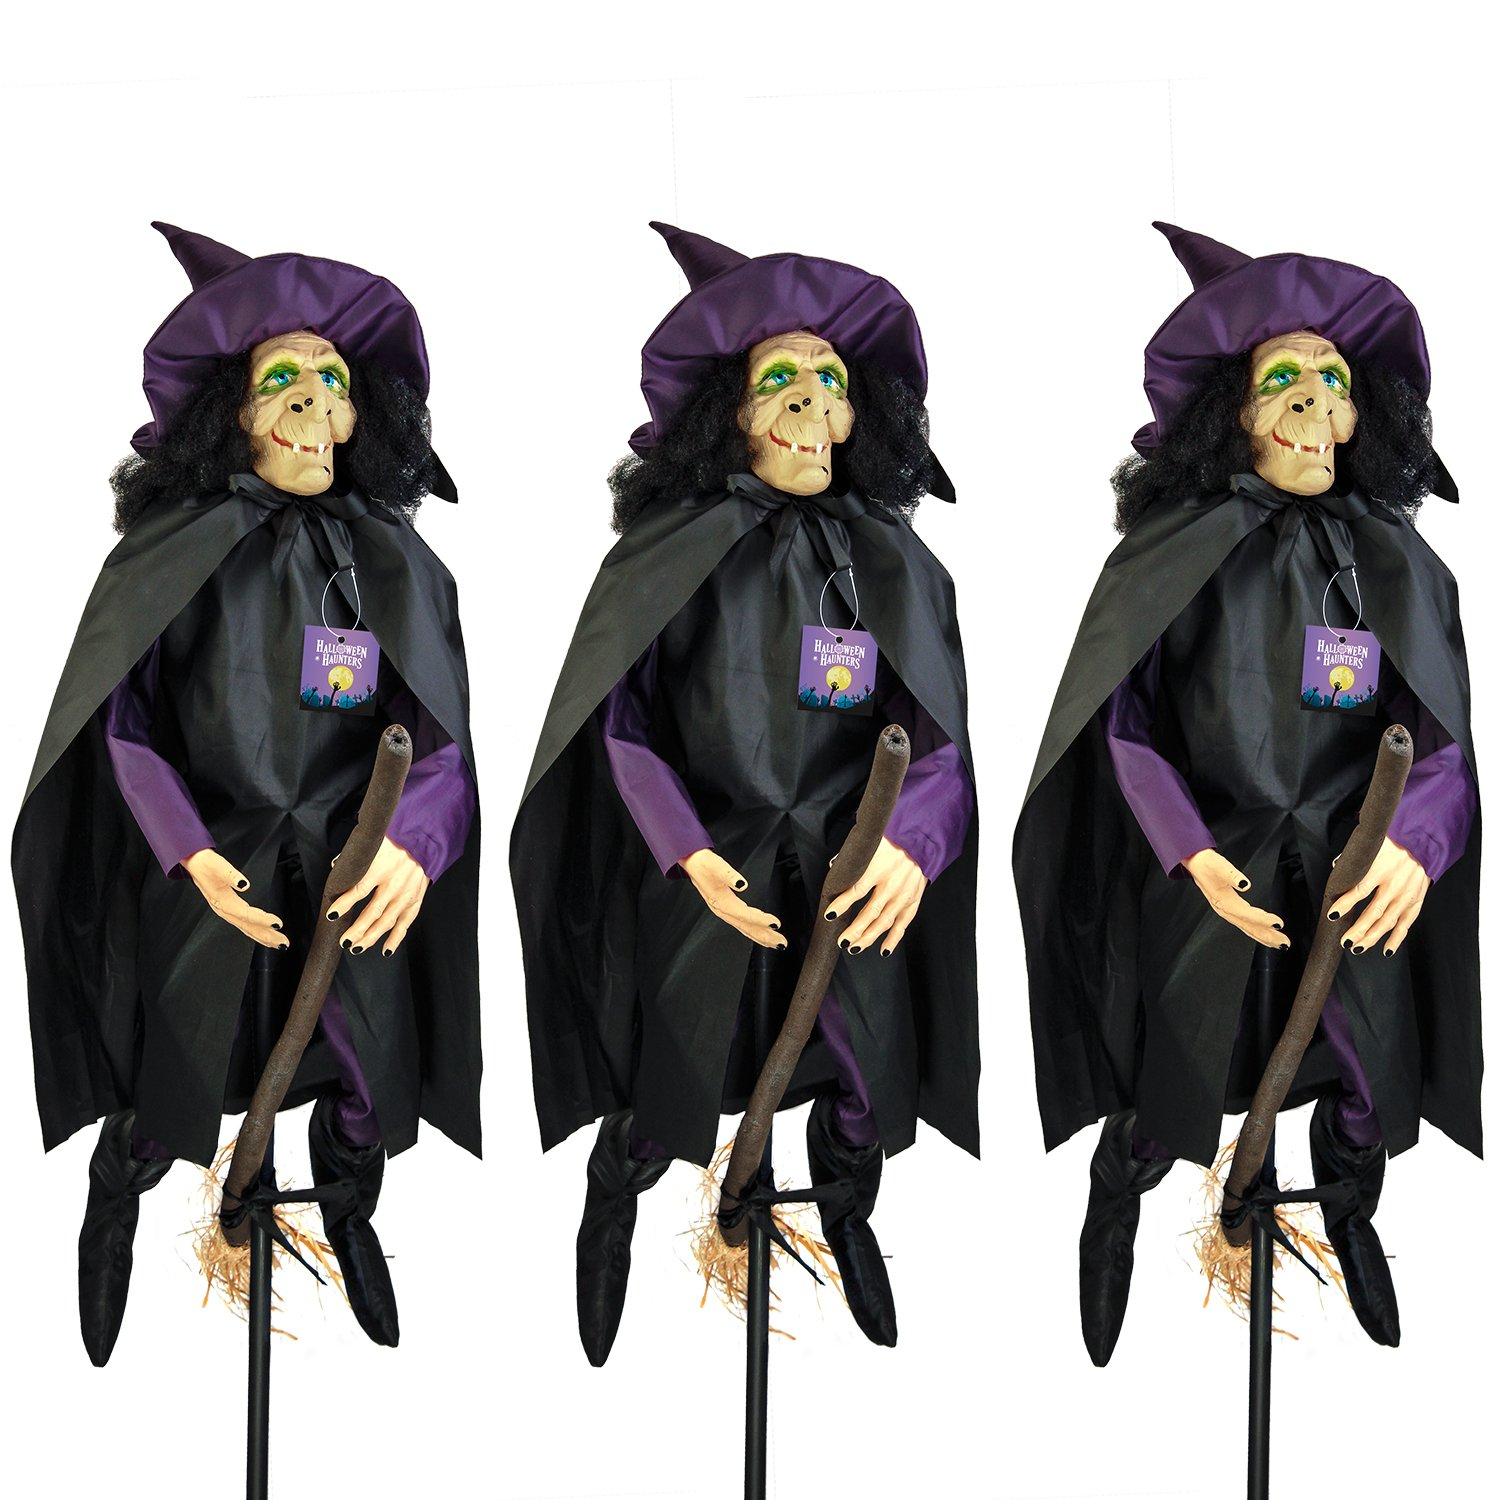 Halloween Haunters 31'' Standing Flying Witch Prop Decoration - Purple, Broomstick (Pack of 3 Witches)